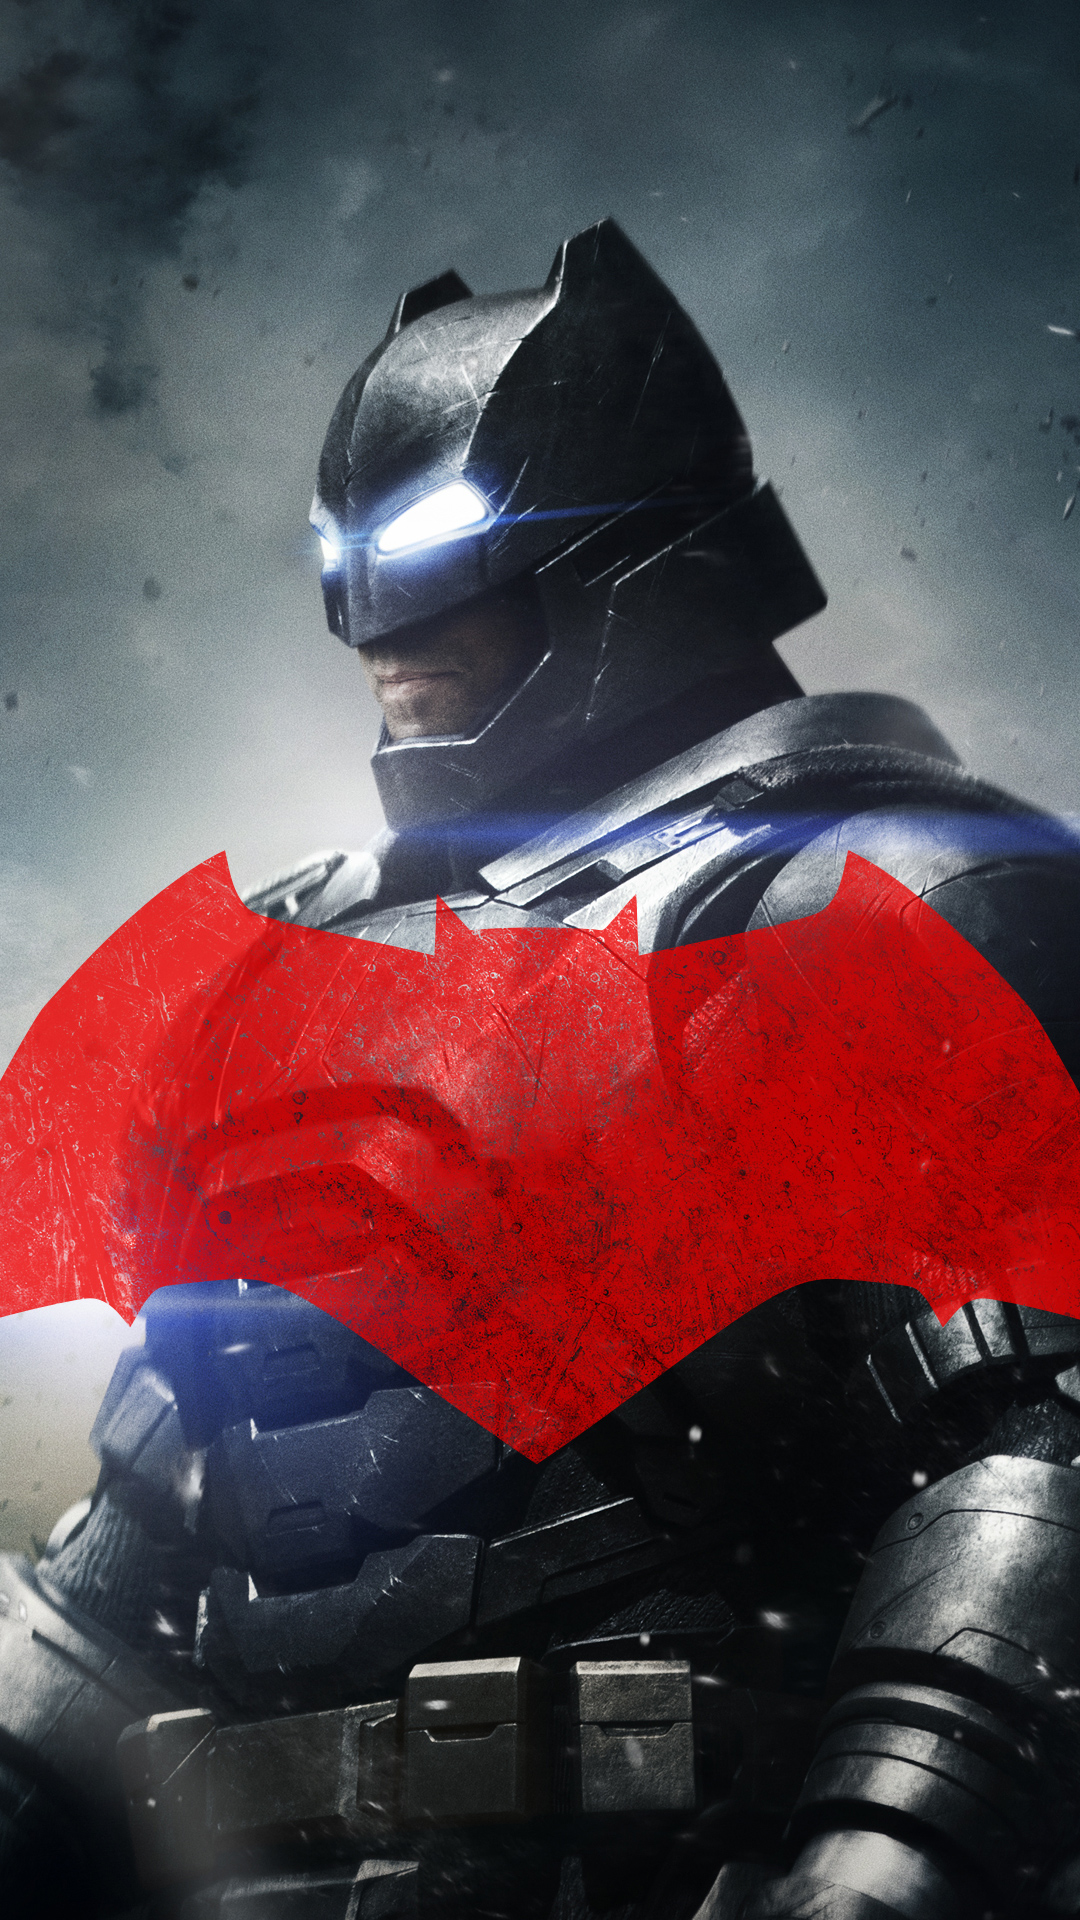 Batman Vs Superman Ben Affleck Iphone 6 Plus Hd Wallpaper Batman